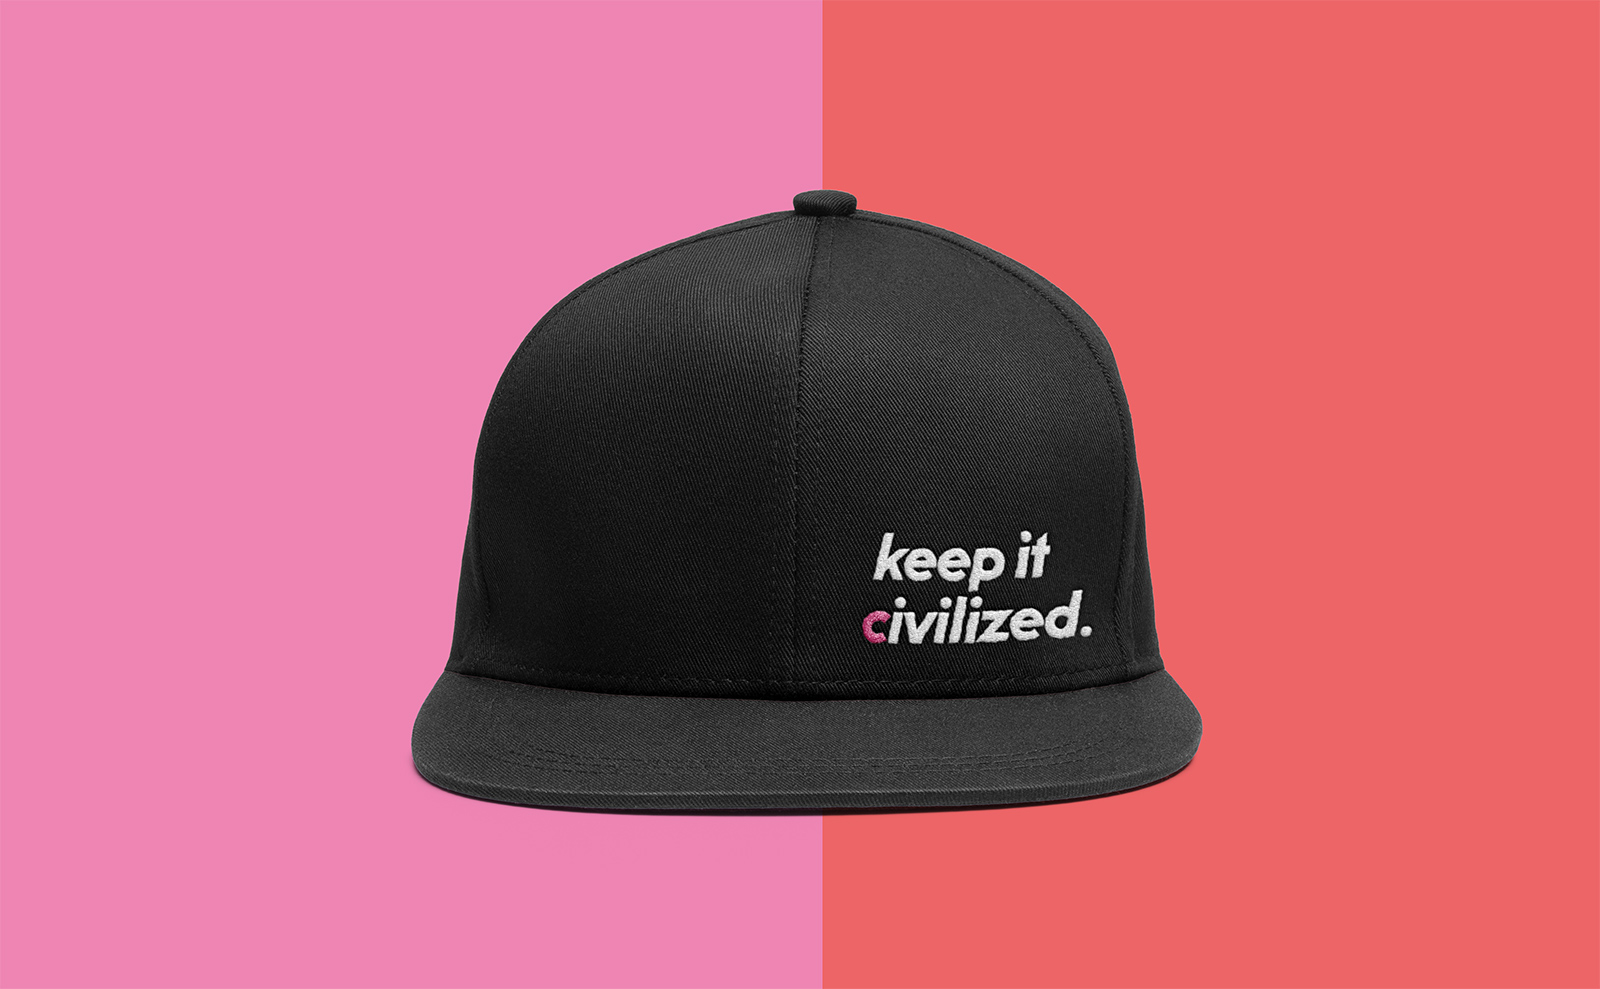 keep it civilized cscape cap for calgary